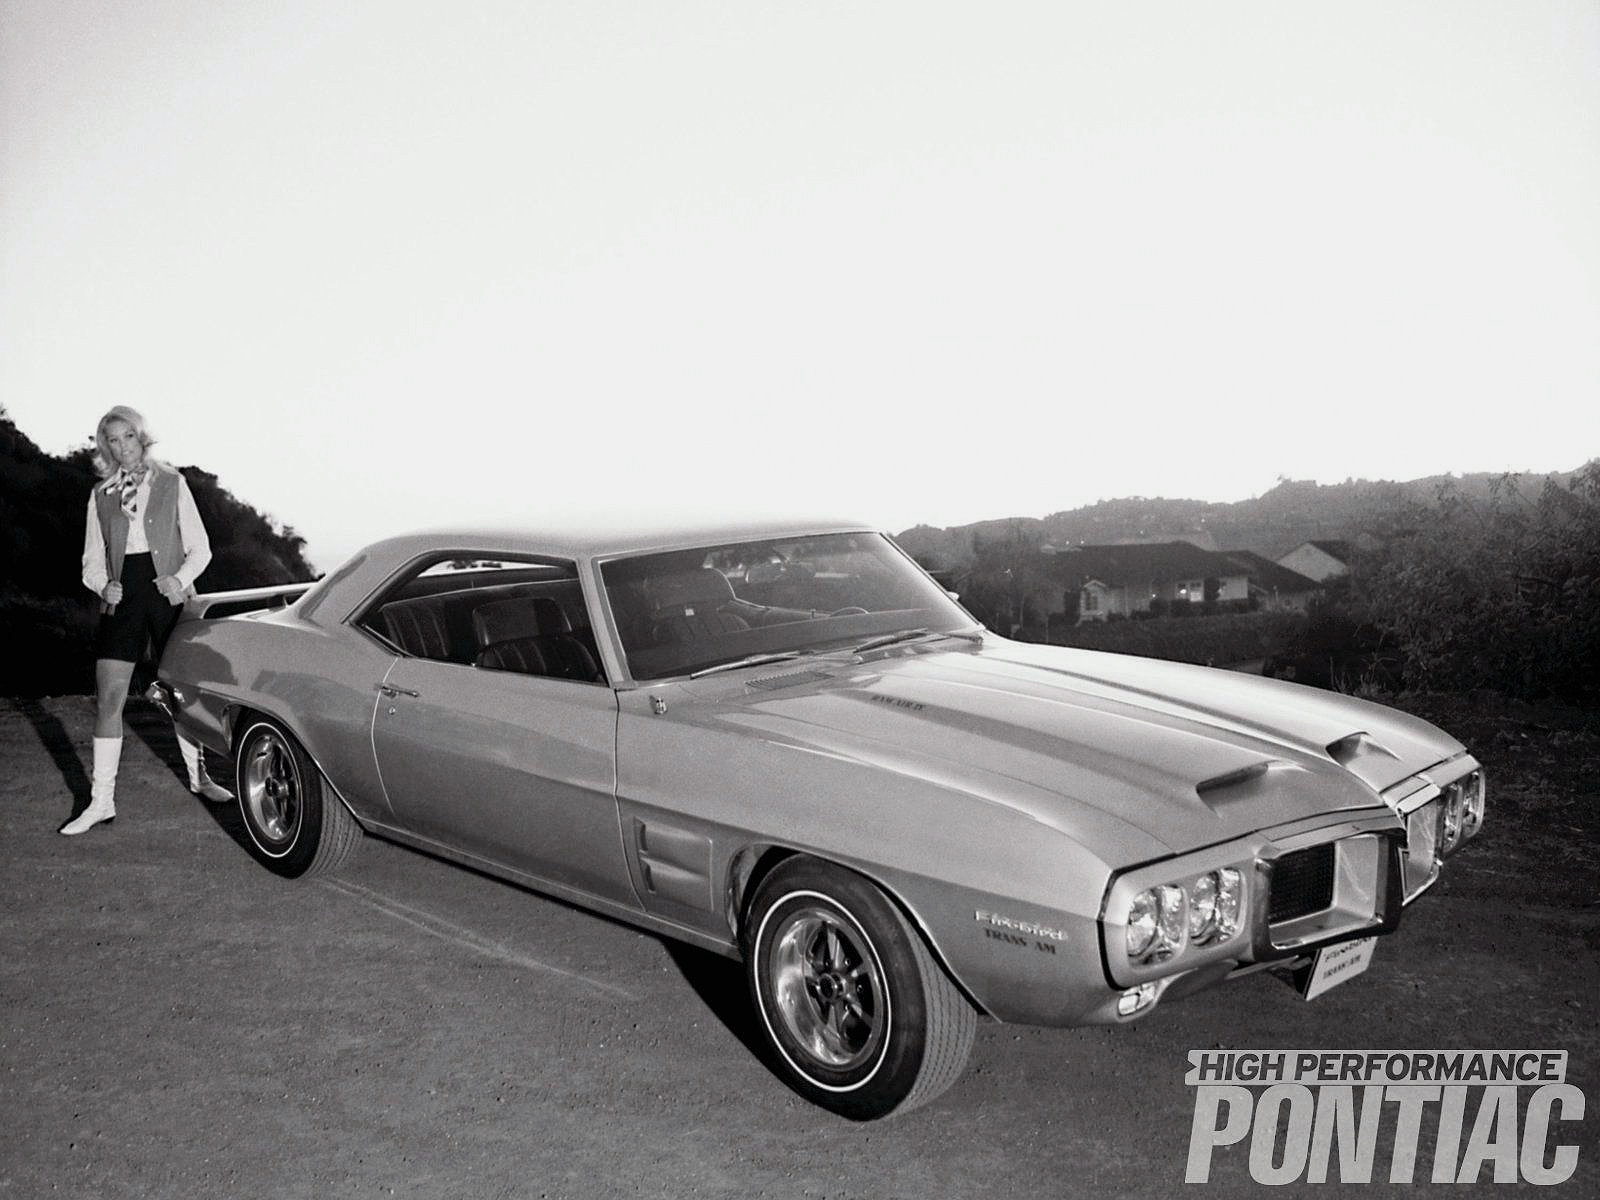 Incredible Story About The Prototype 1969 Pontiac Firebird Trans Am